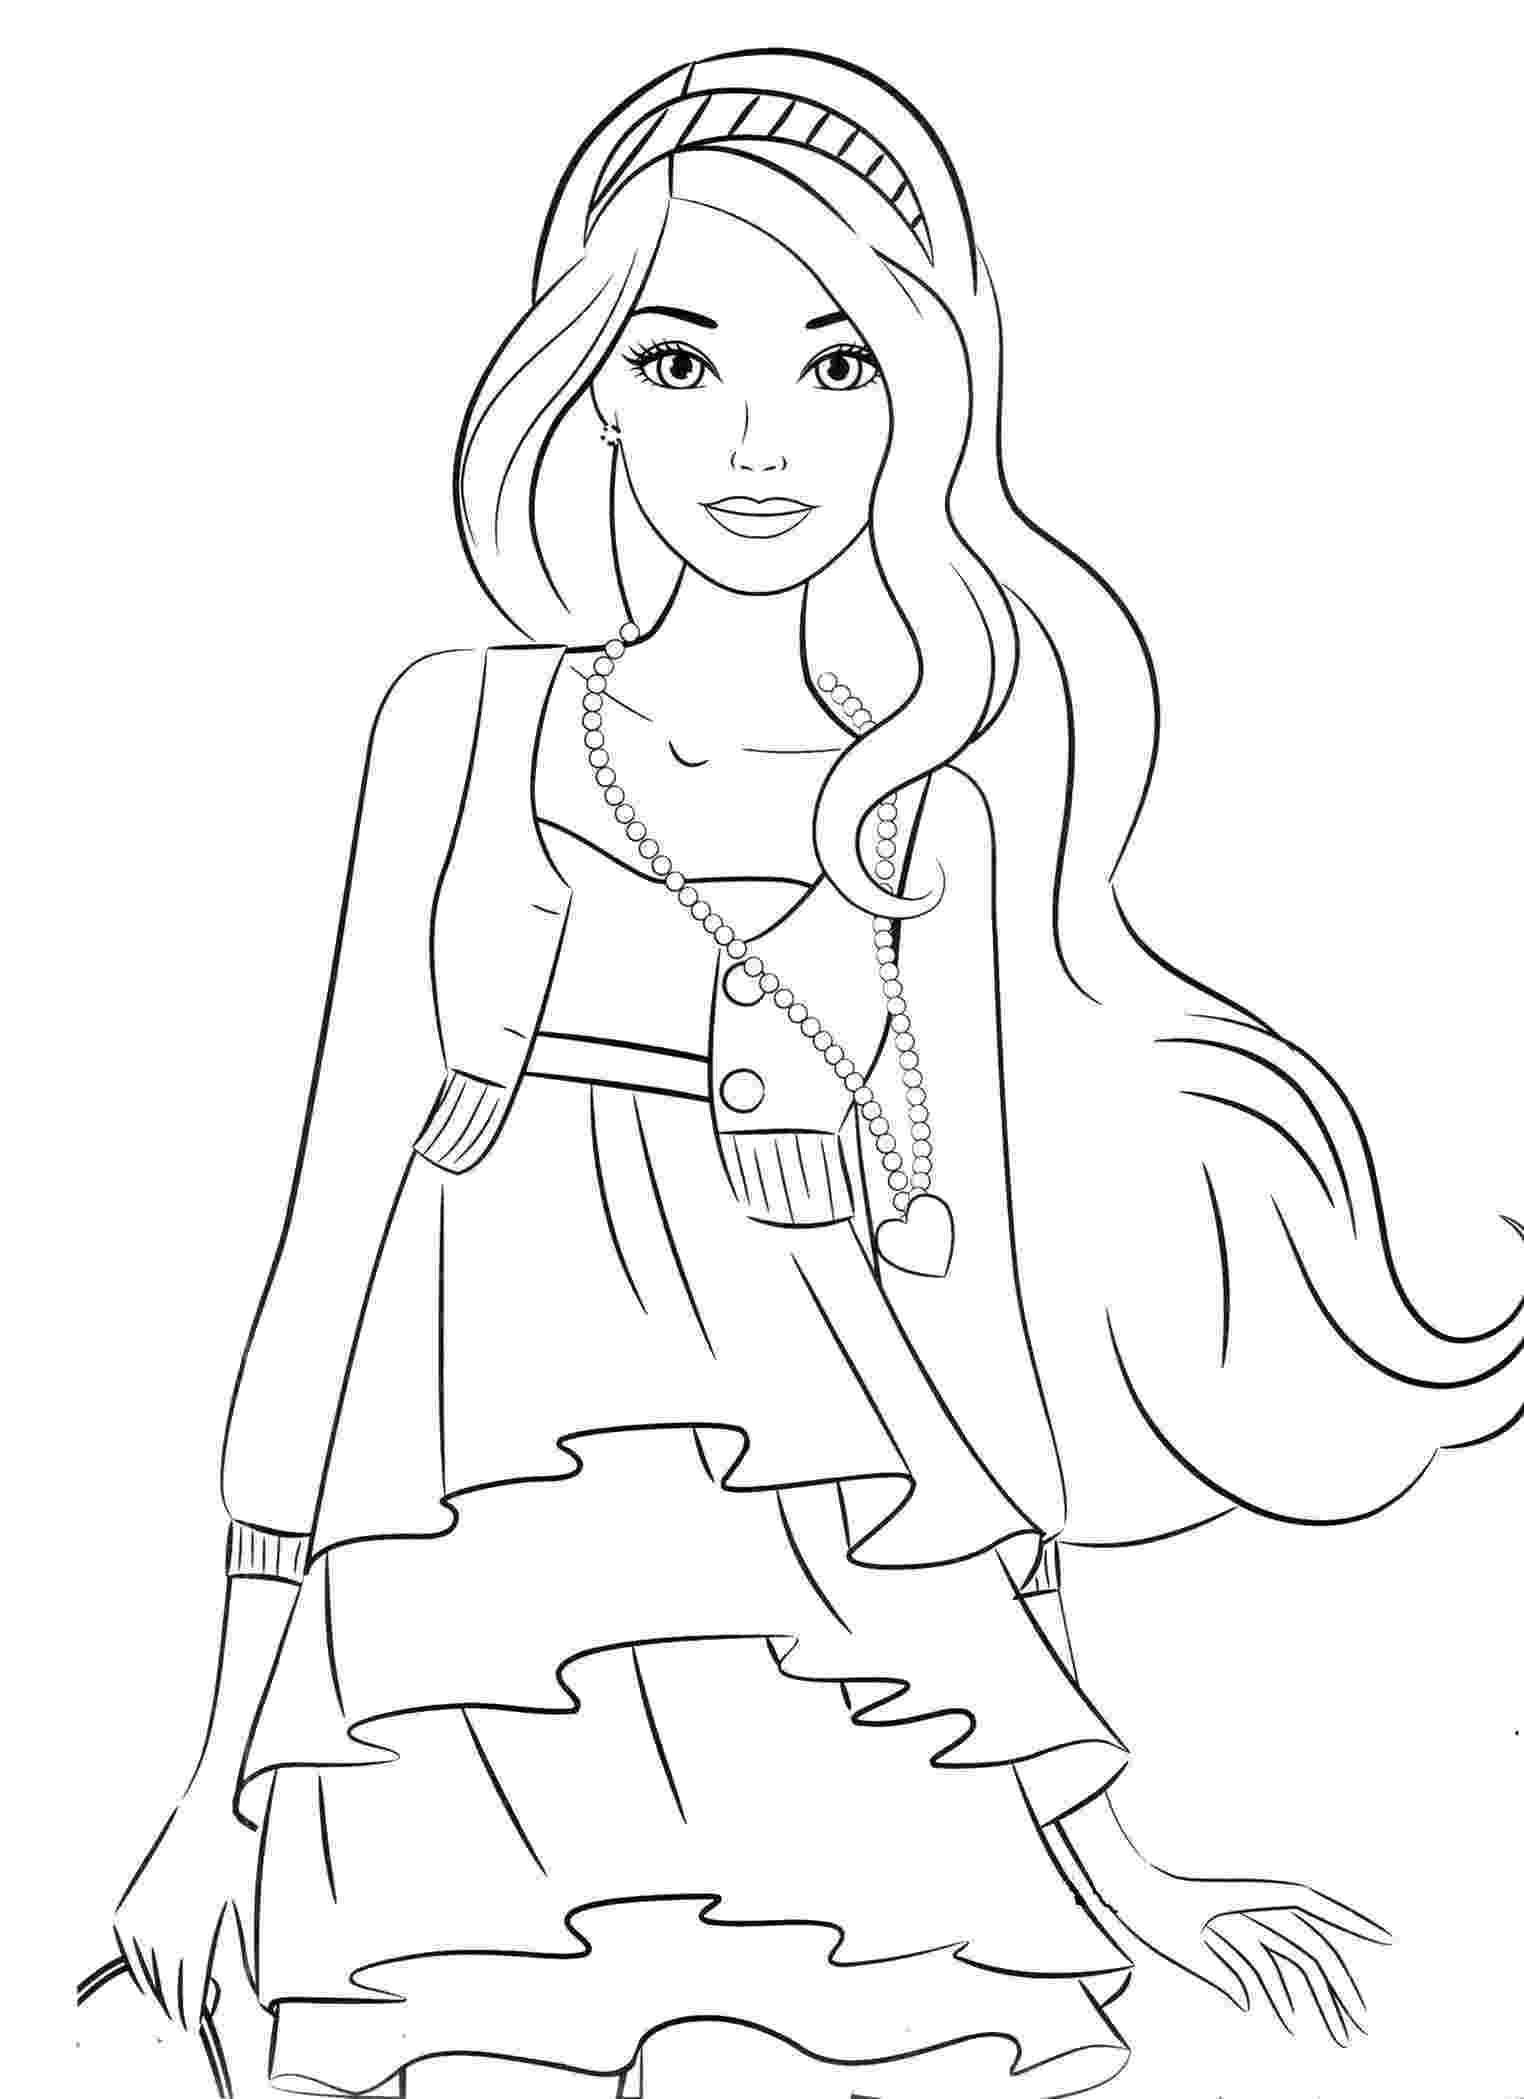 girl colouring pages free girl doll coloring pages girl pages colouring